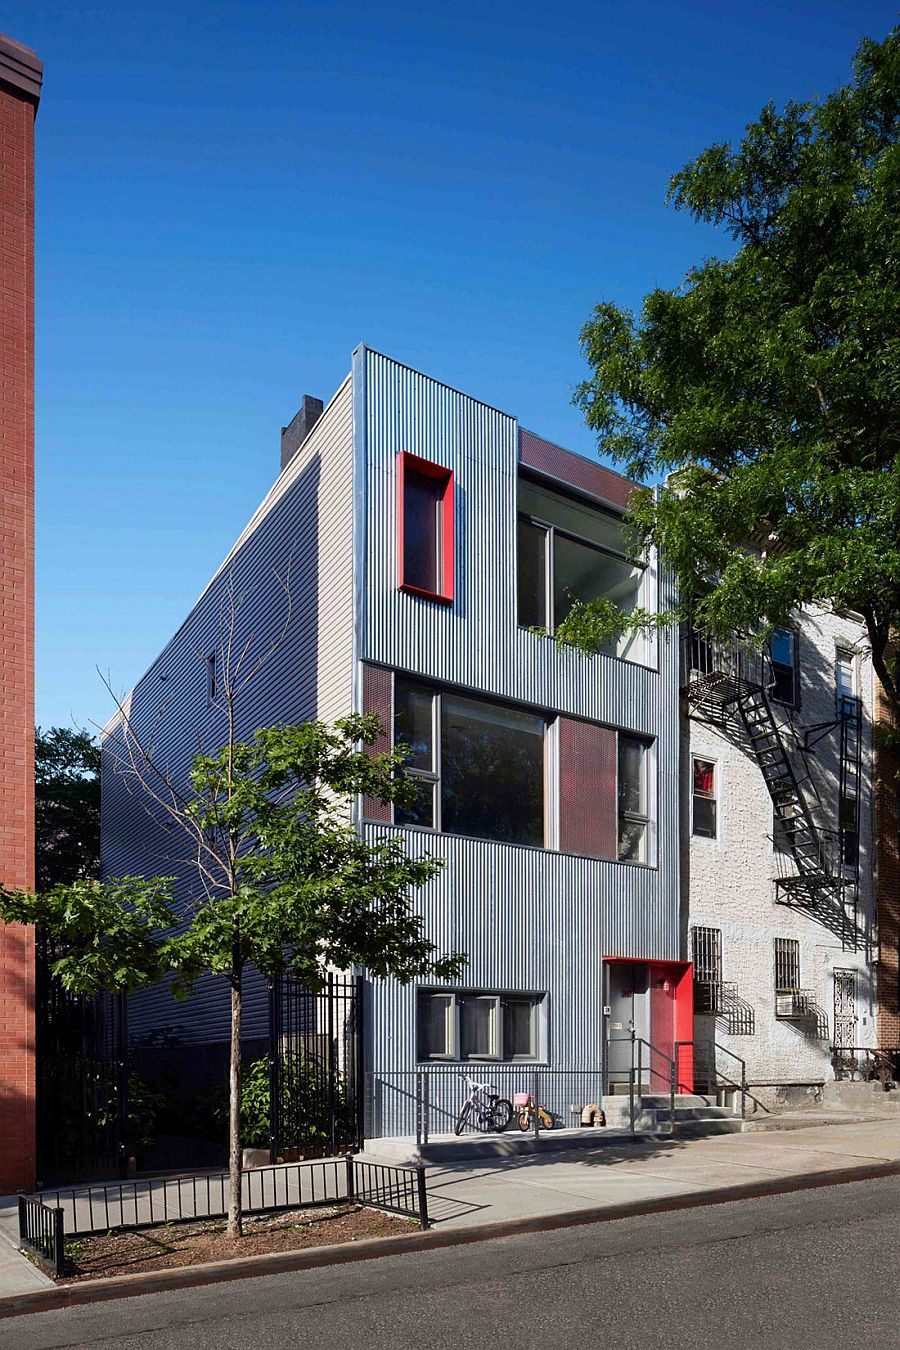 Unique metallic exterior of Gutman-Umansky Residence in Brooklyn